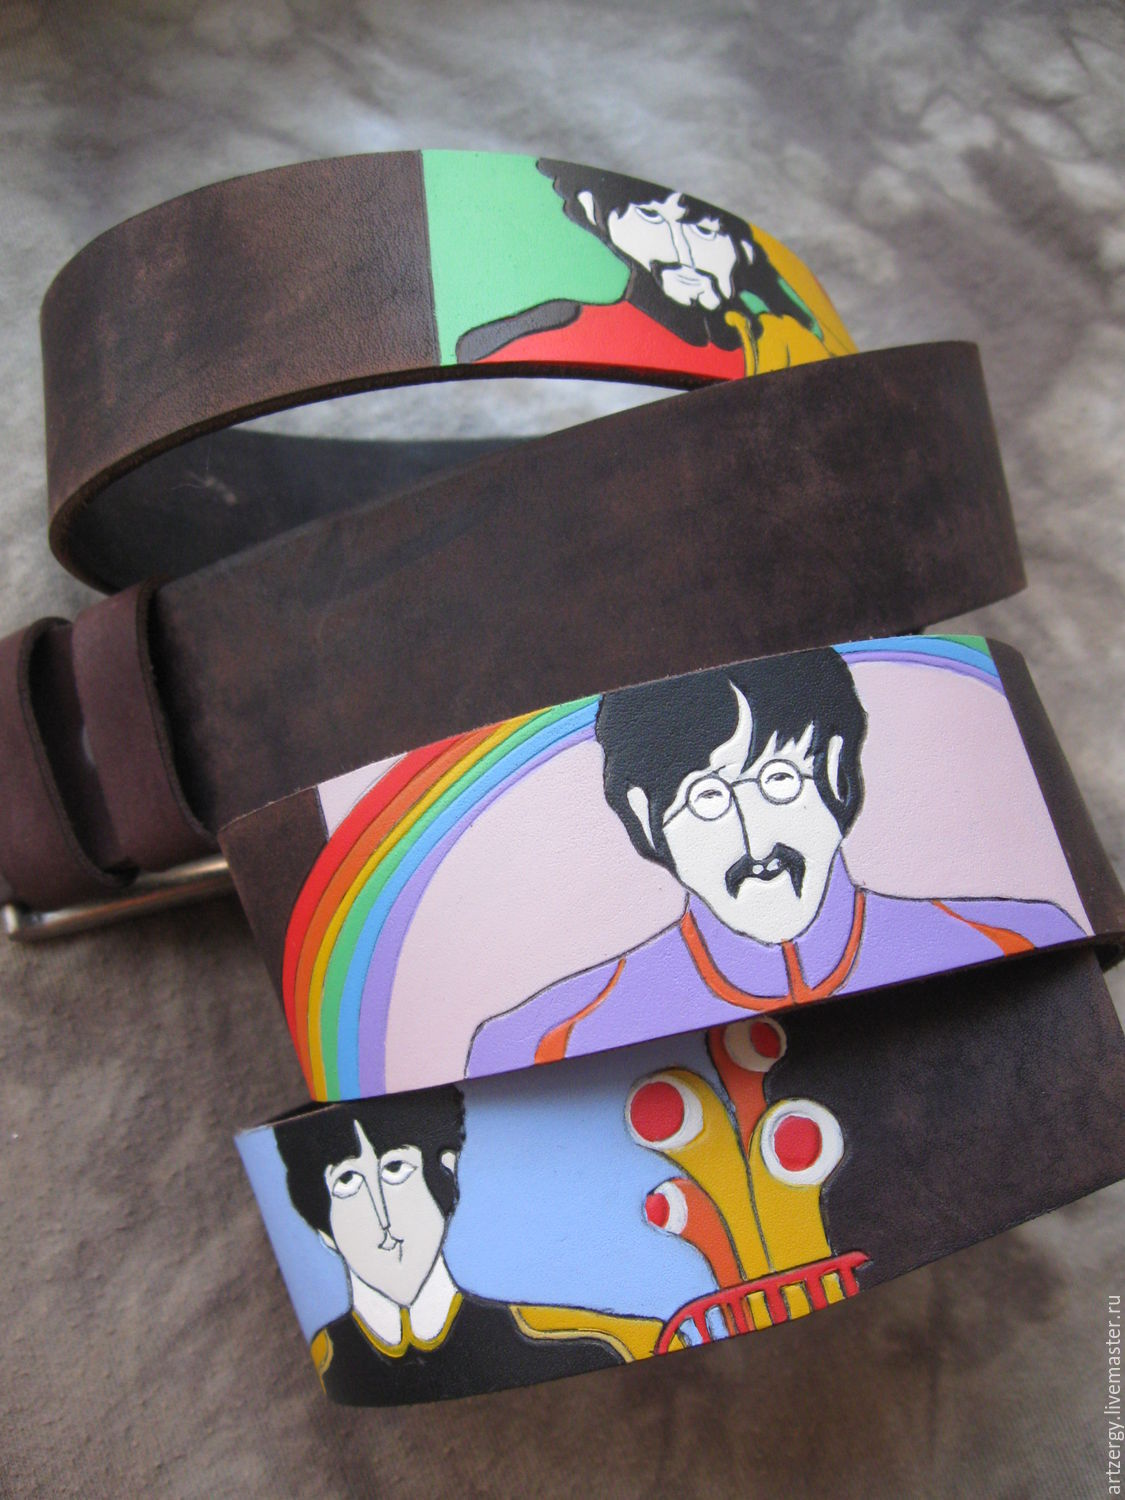 BEATLE'YELLOW'SUB strap leather, Straps, Moscow,  Фото №1